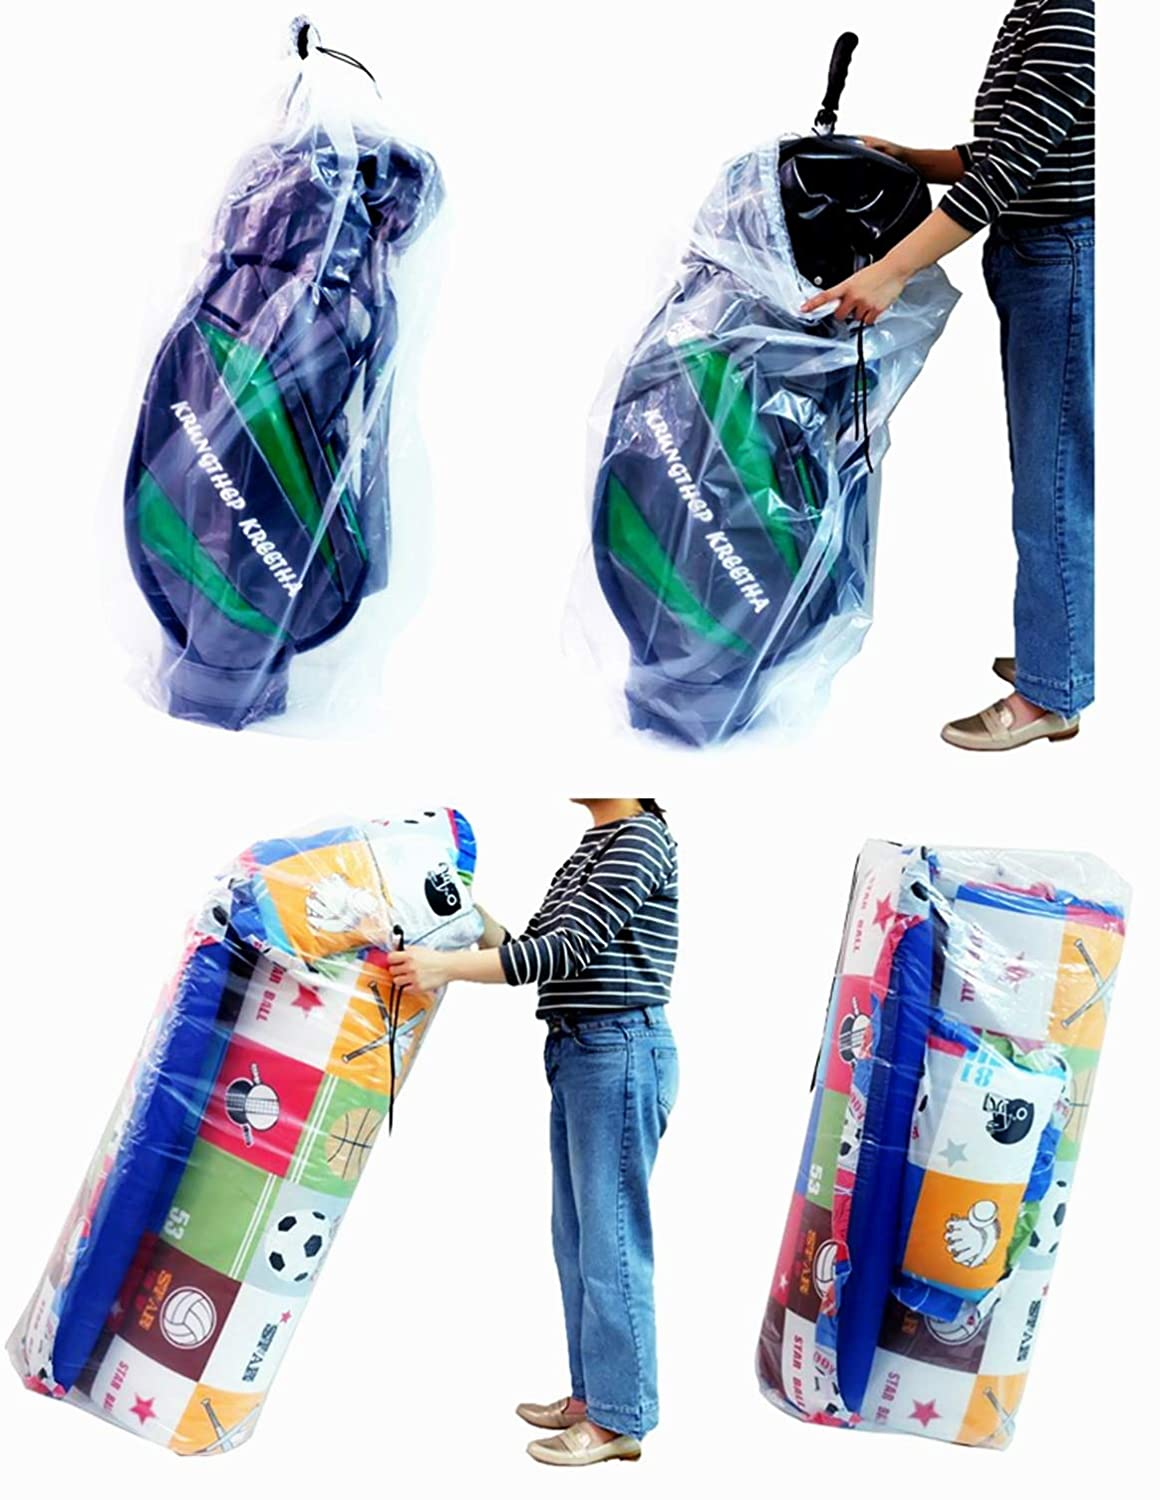 Big Plastic Bags Multi-Purpose Drawstring Bag Set Dust Cover For Keeping Golf's Bag, Picnic Mattress Good for Household Organizing Reusable Set of 2 Sizes